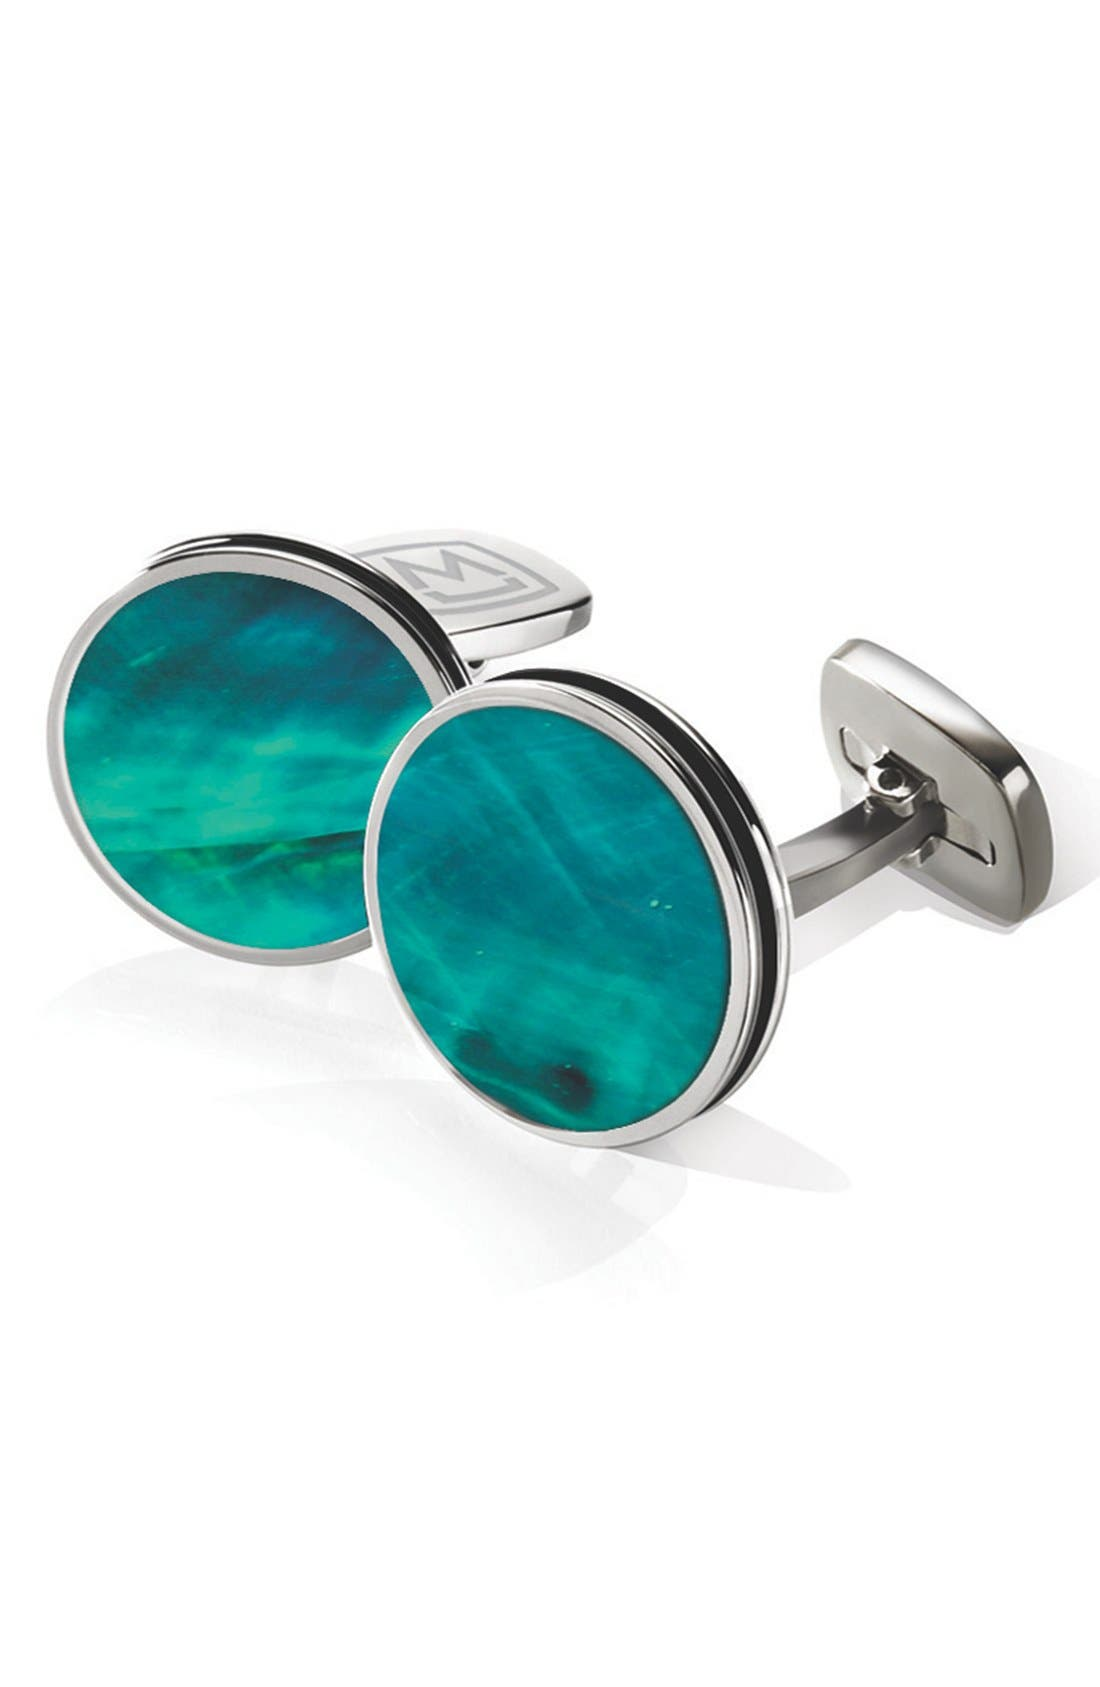 Alternate Image 1 Selected - M-Clip® Stainless Steel Cuff Links